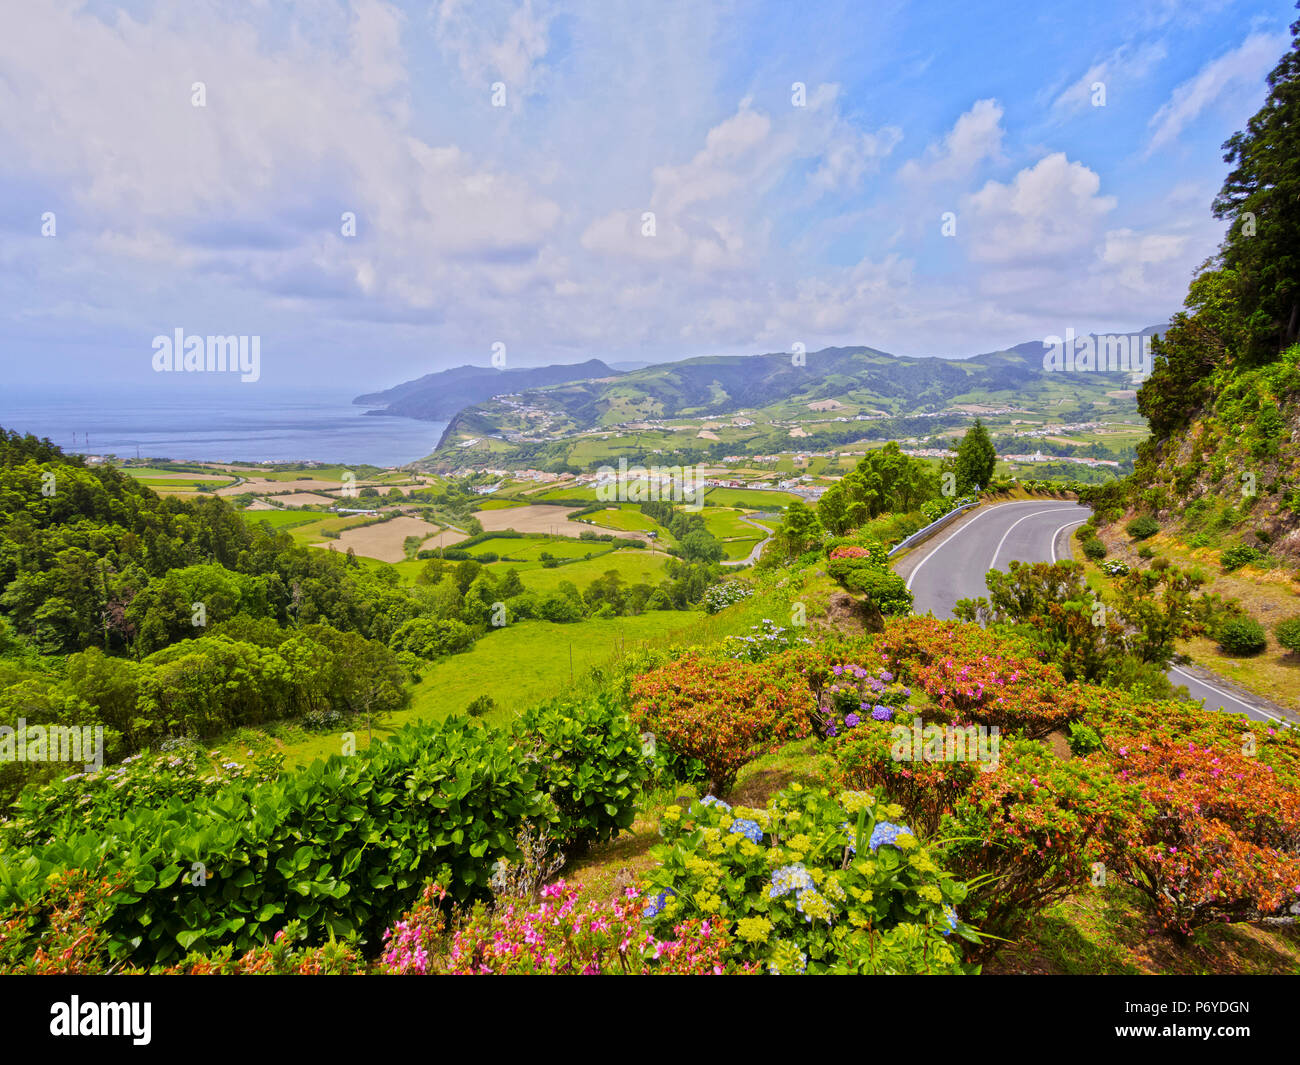 Portugal, Azores, Sao Miguel, Nordeste, View of the Eastern Coast with Hortensias in the foreground. - Stock Image